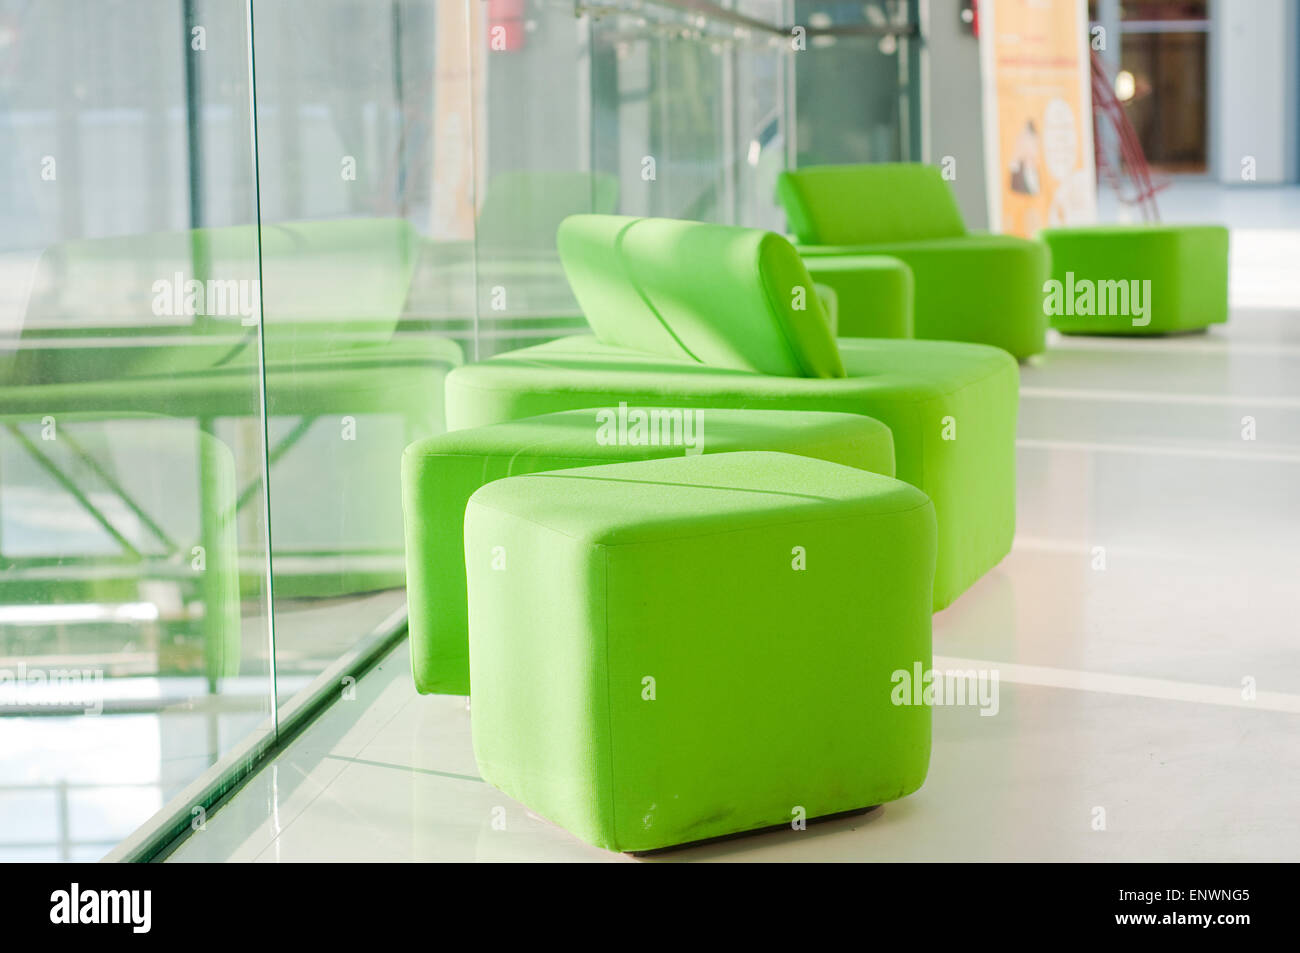 Shot of green armchairs in interior - Stock Image